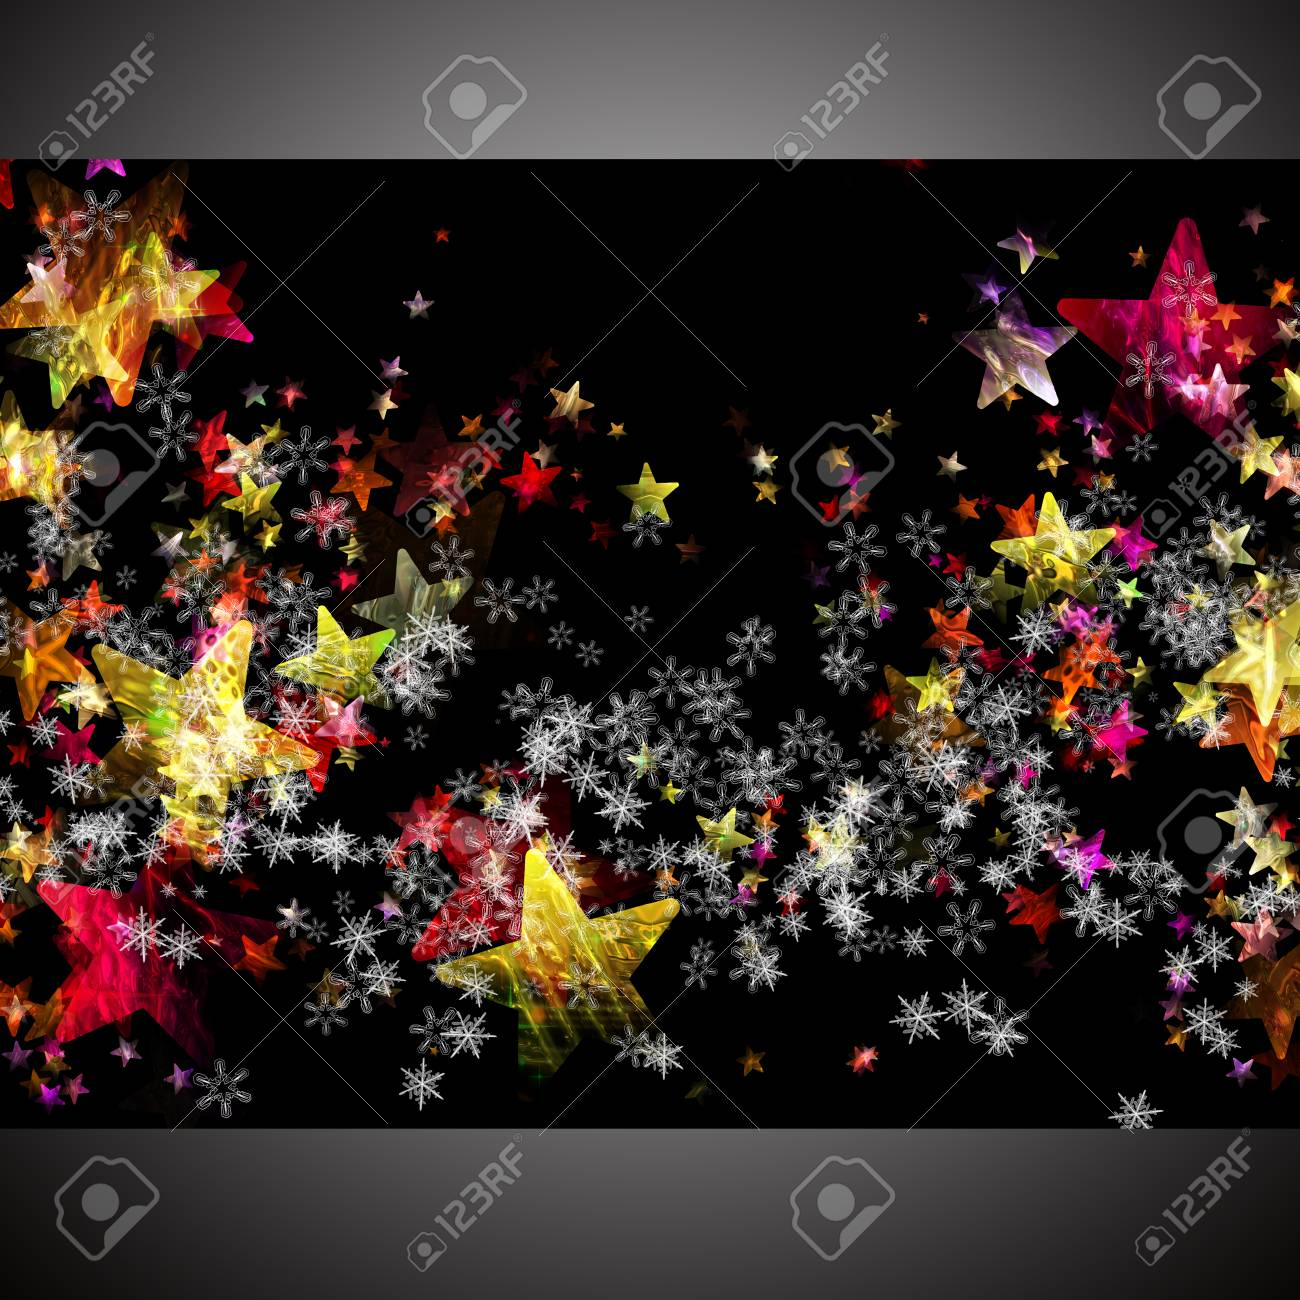 Wonderful Christmas background design illustration with stars and snowflakes Stock Illustration - 23382923